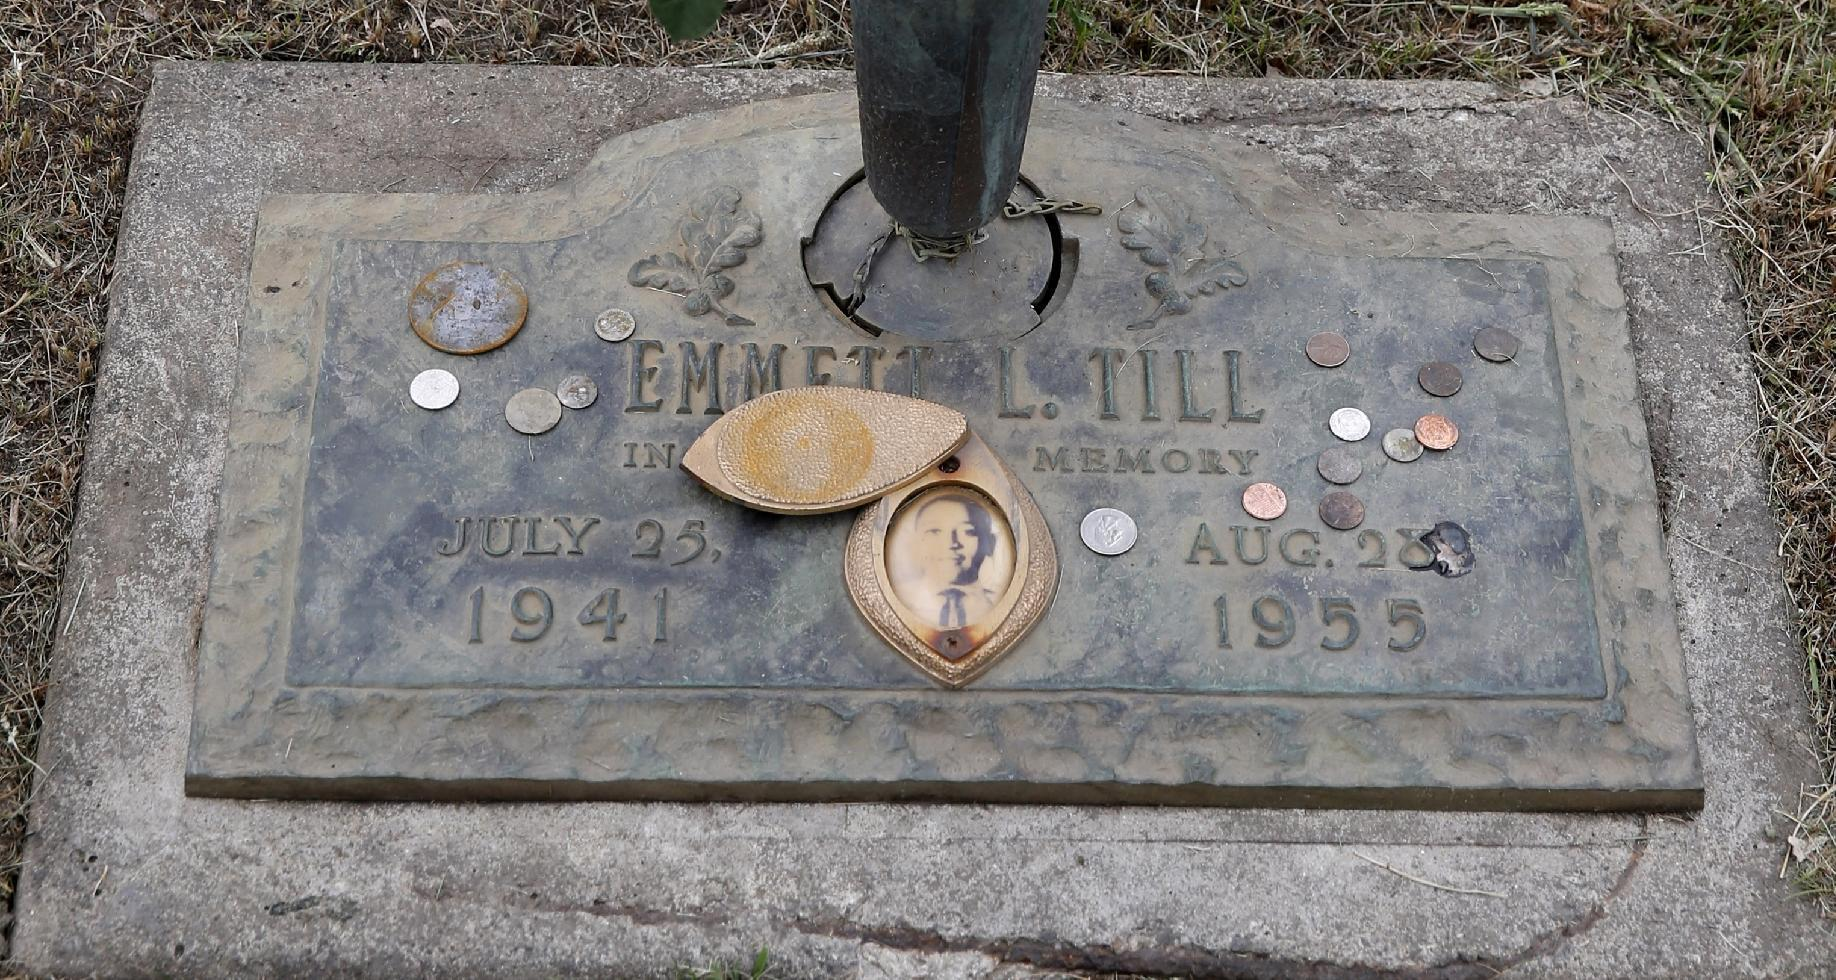 FILE - In this Aug. 28, 2015 file photo, the grave marker of Emmett Till has a photo of Till and coins placed on it during a gravesite ceremony at the Burr Oak Cemetery marking the 60th anniversary of the murder of Till in Mississippi, in Alsip, Ill. The woman at the center of the trial of Emmett Till's alleged killers has acknowledged that she falsely testified he made physical and verbal threats, according to a new book. Historian Timothy B. Tyson told The Associated Press on Saturday, Jan. 28, 2017, that Carolyn Donham broke her long public silence in an interview with him in 2008. (AP Photo/Charles Rex Arbogast)